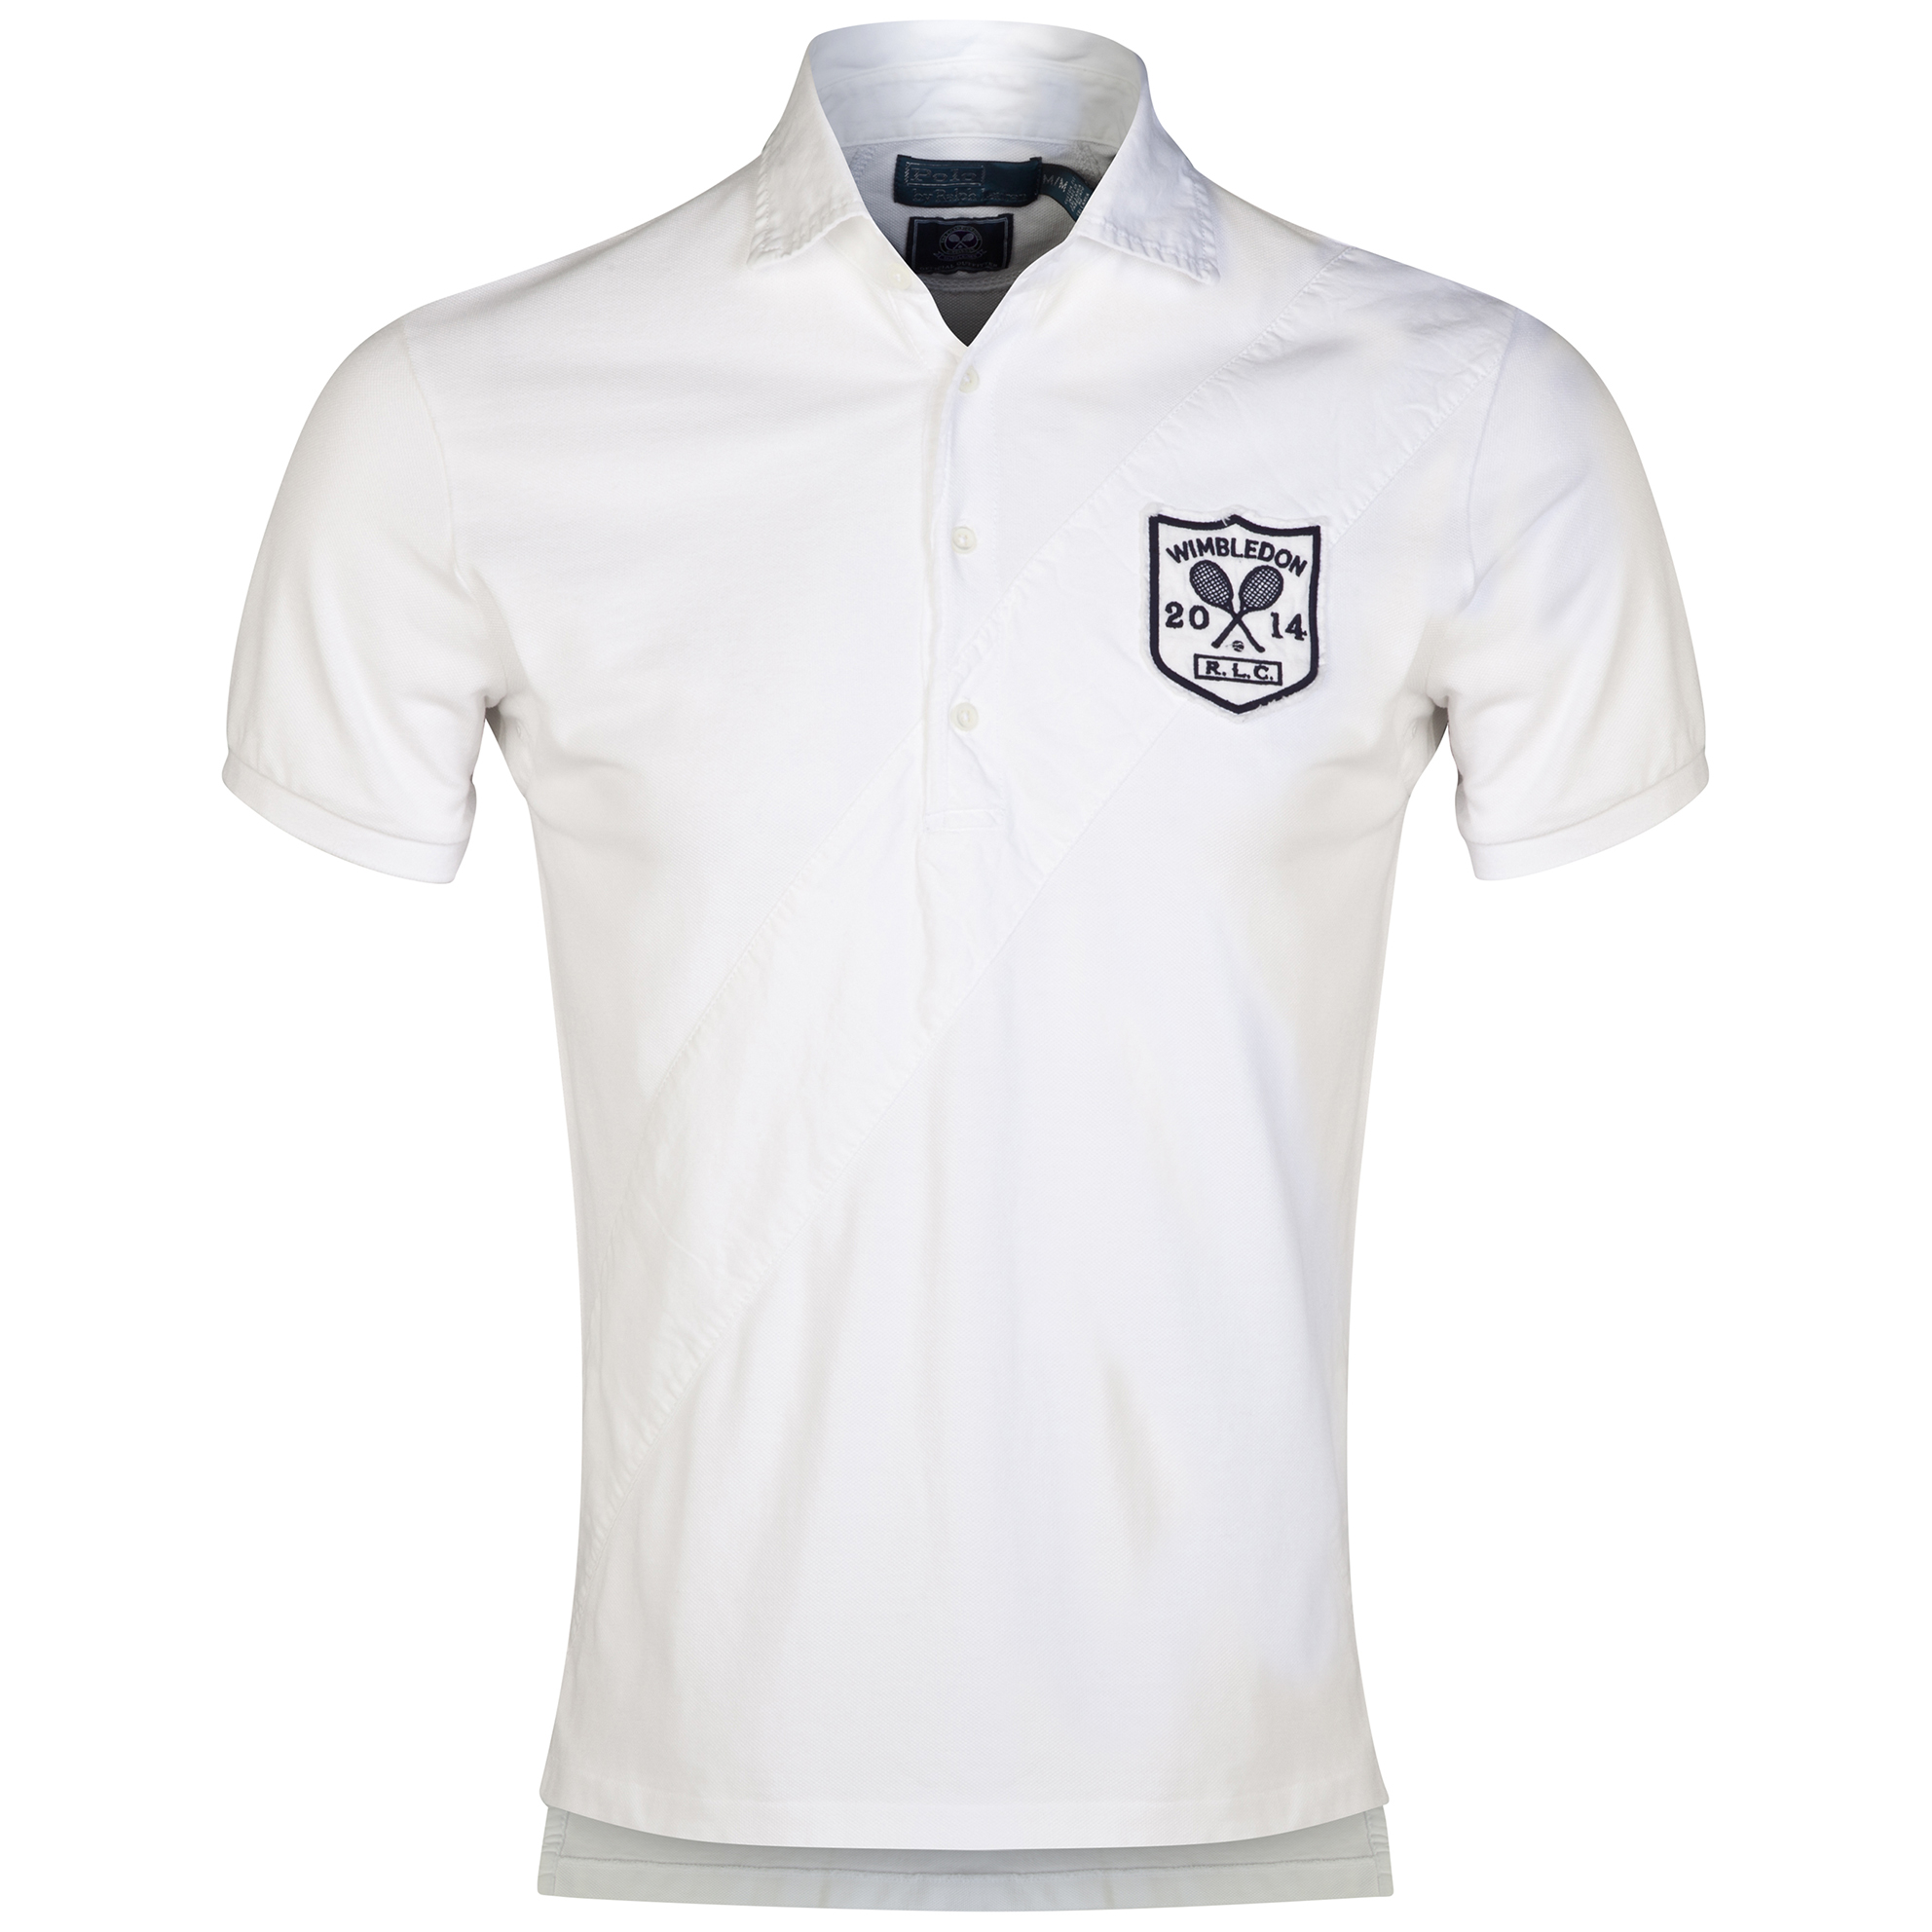 Wimbledon Polo Ralph Lauren Custom Fit Diagonal Stripe Polo - Classic Oxford White